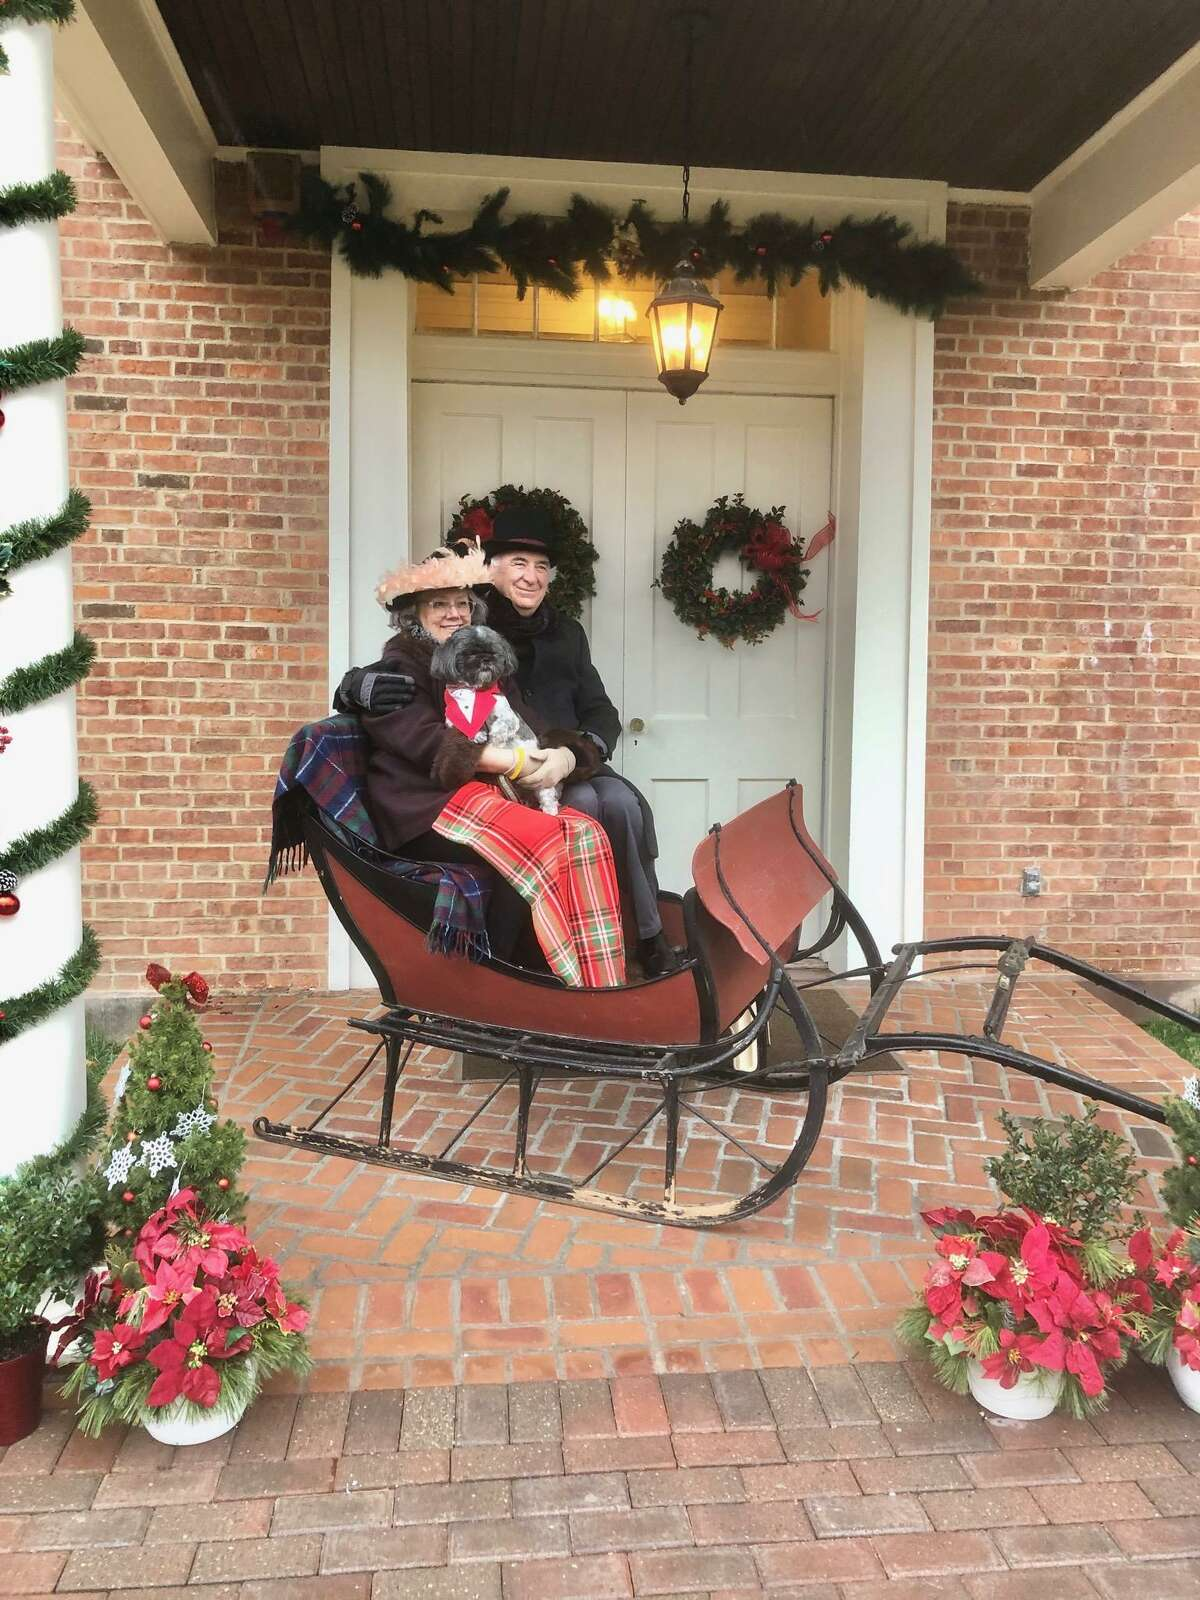 Last week, The Pruyn House had a holiday photo opportunity for local families. (Tami Sherry)